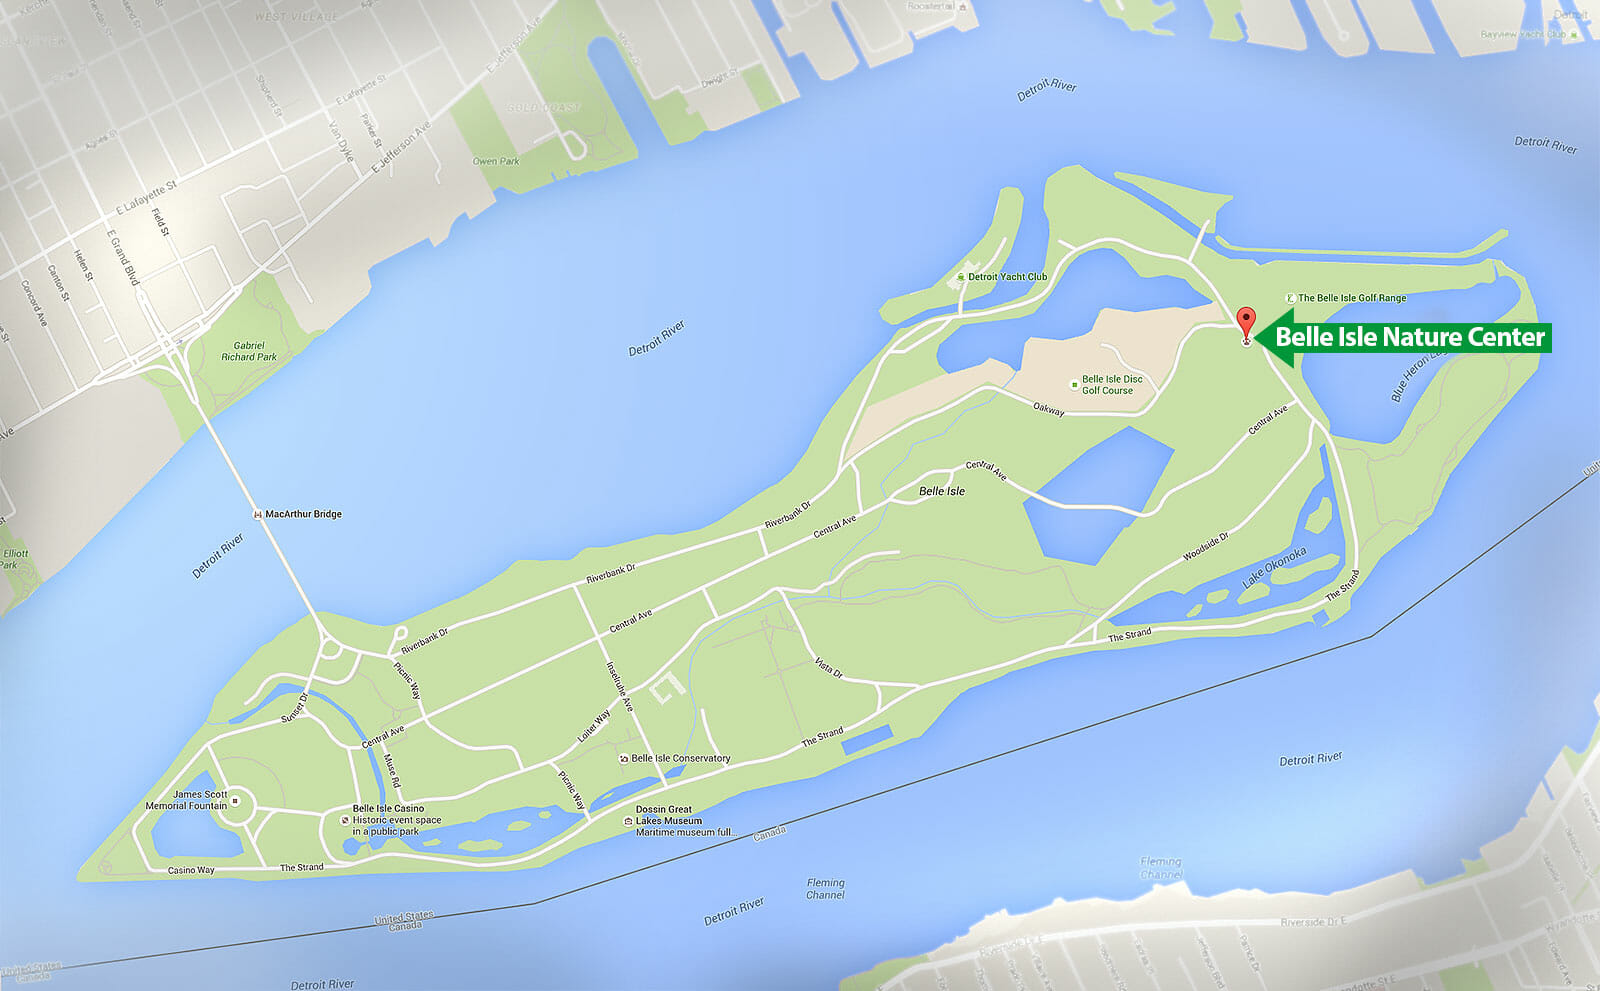 Belle Isle Nature Center - Map